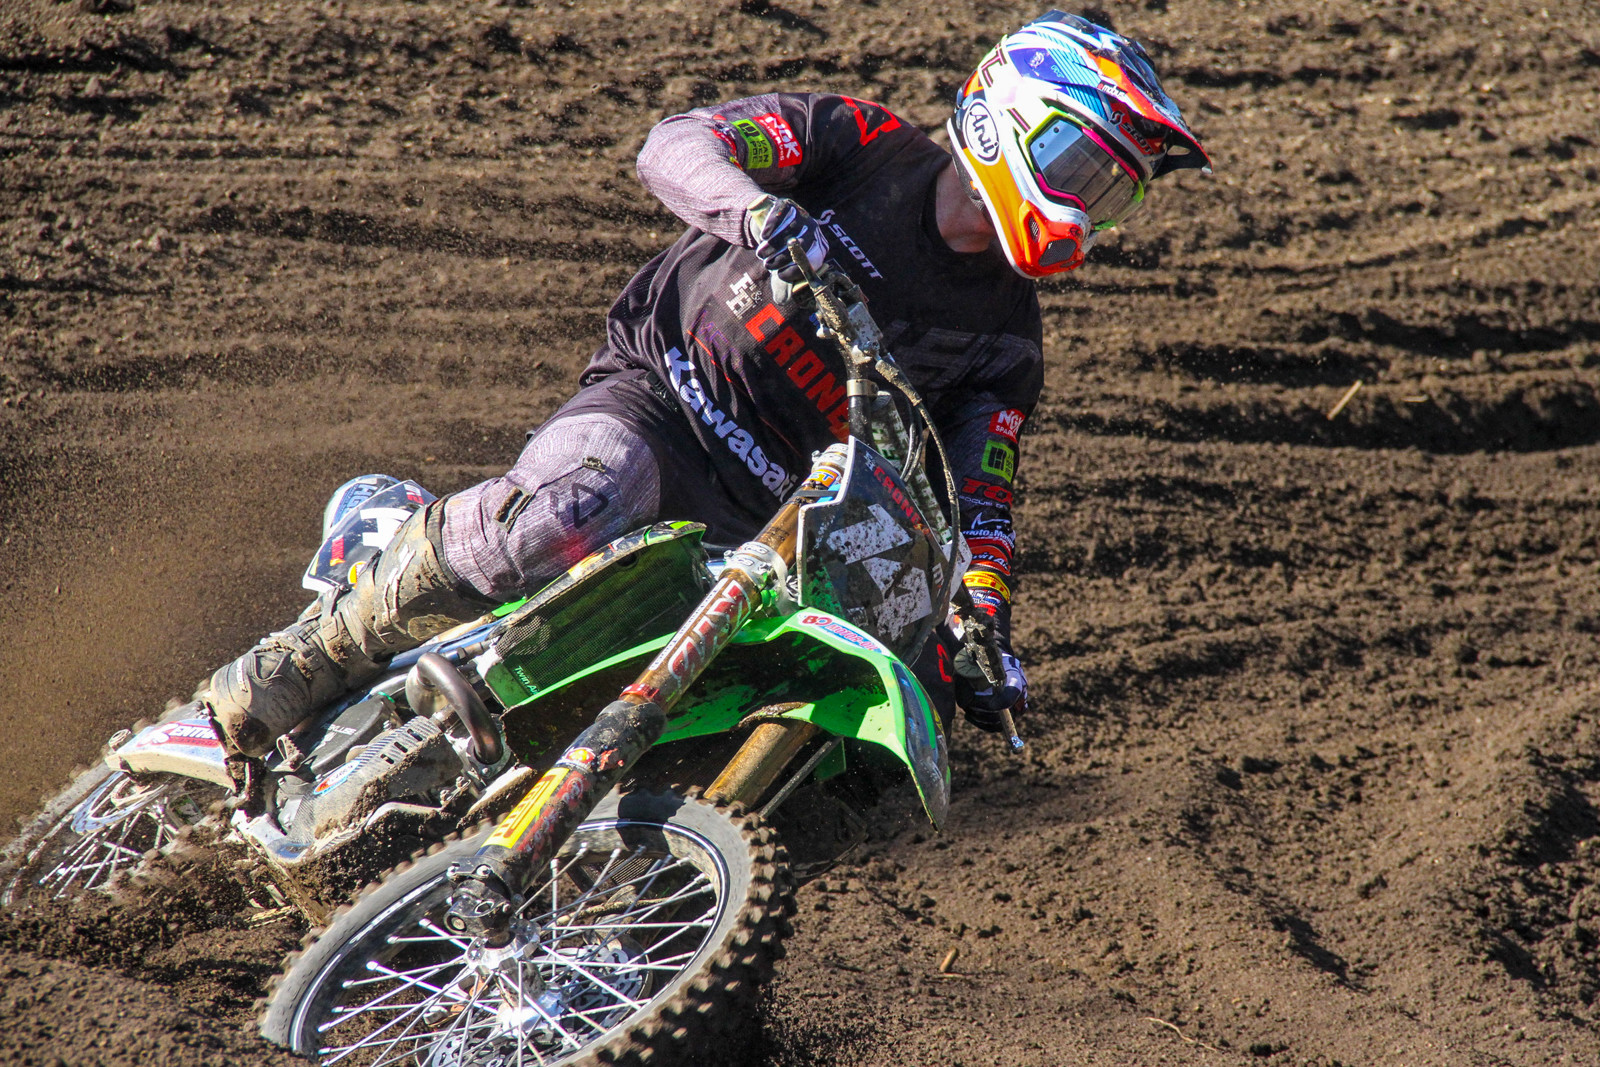 Jed Beaton and his F&H Monster Energy Kawasaki had a solid start to the season with fifth overall.